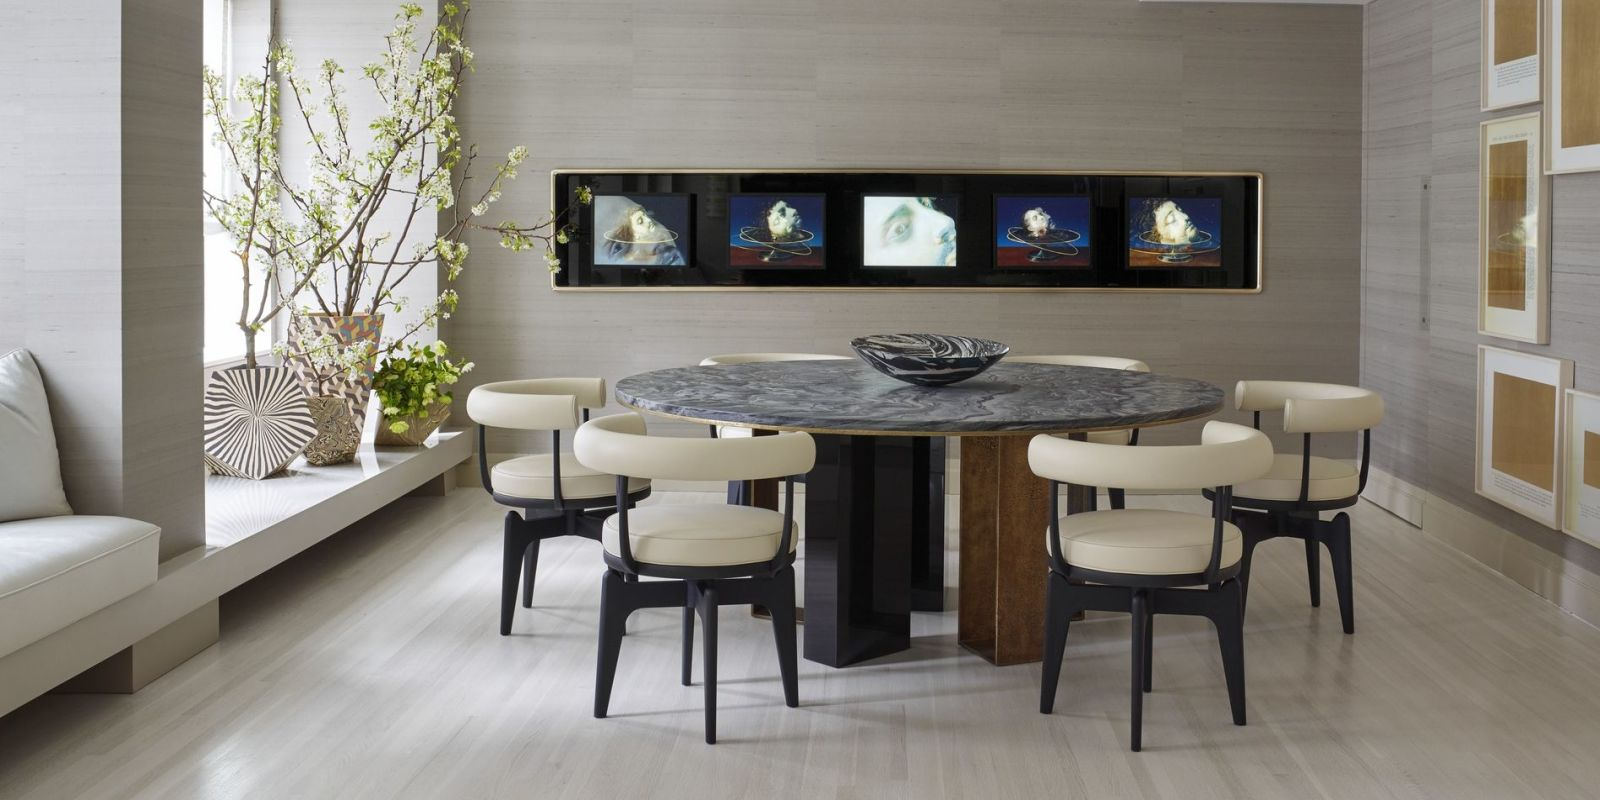 25 modern dining room decorating ideas contemporary for Dinner table design ideas